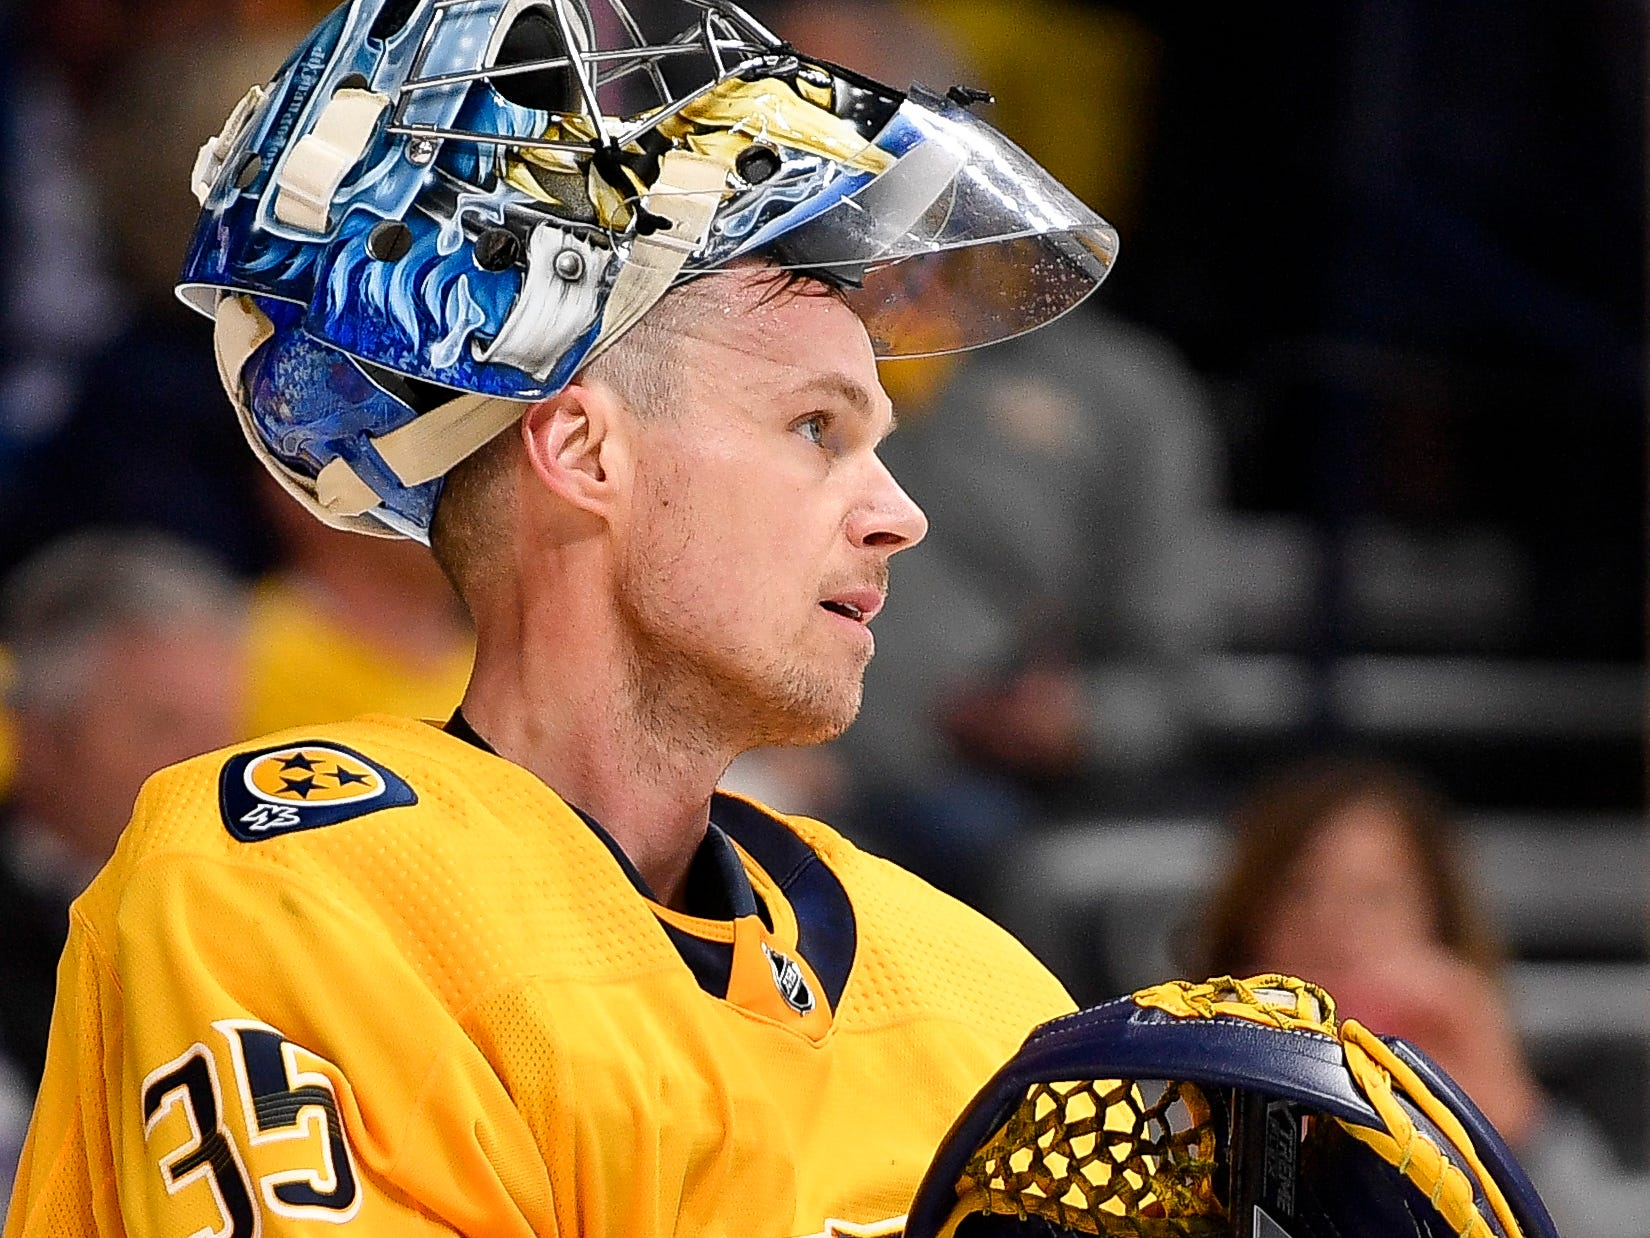 Nashville Predators goaltender Pekka Rinne (35) waits for gameplay to resume during the second period against the Vancouver Canucks at Bridgestone Arena in Nashville, Tenn., Thursday, April 4, 2019.